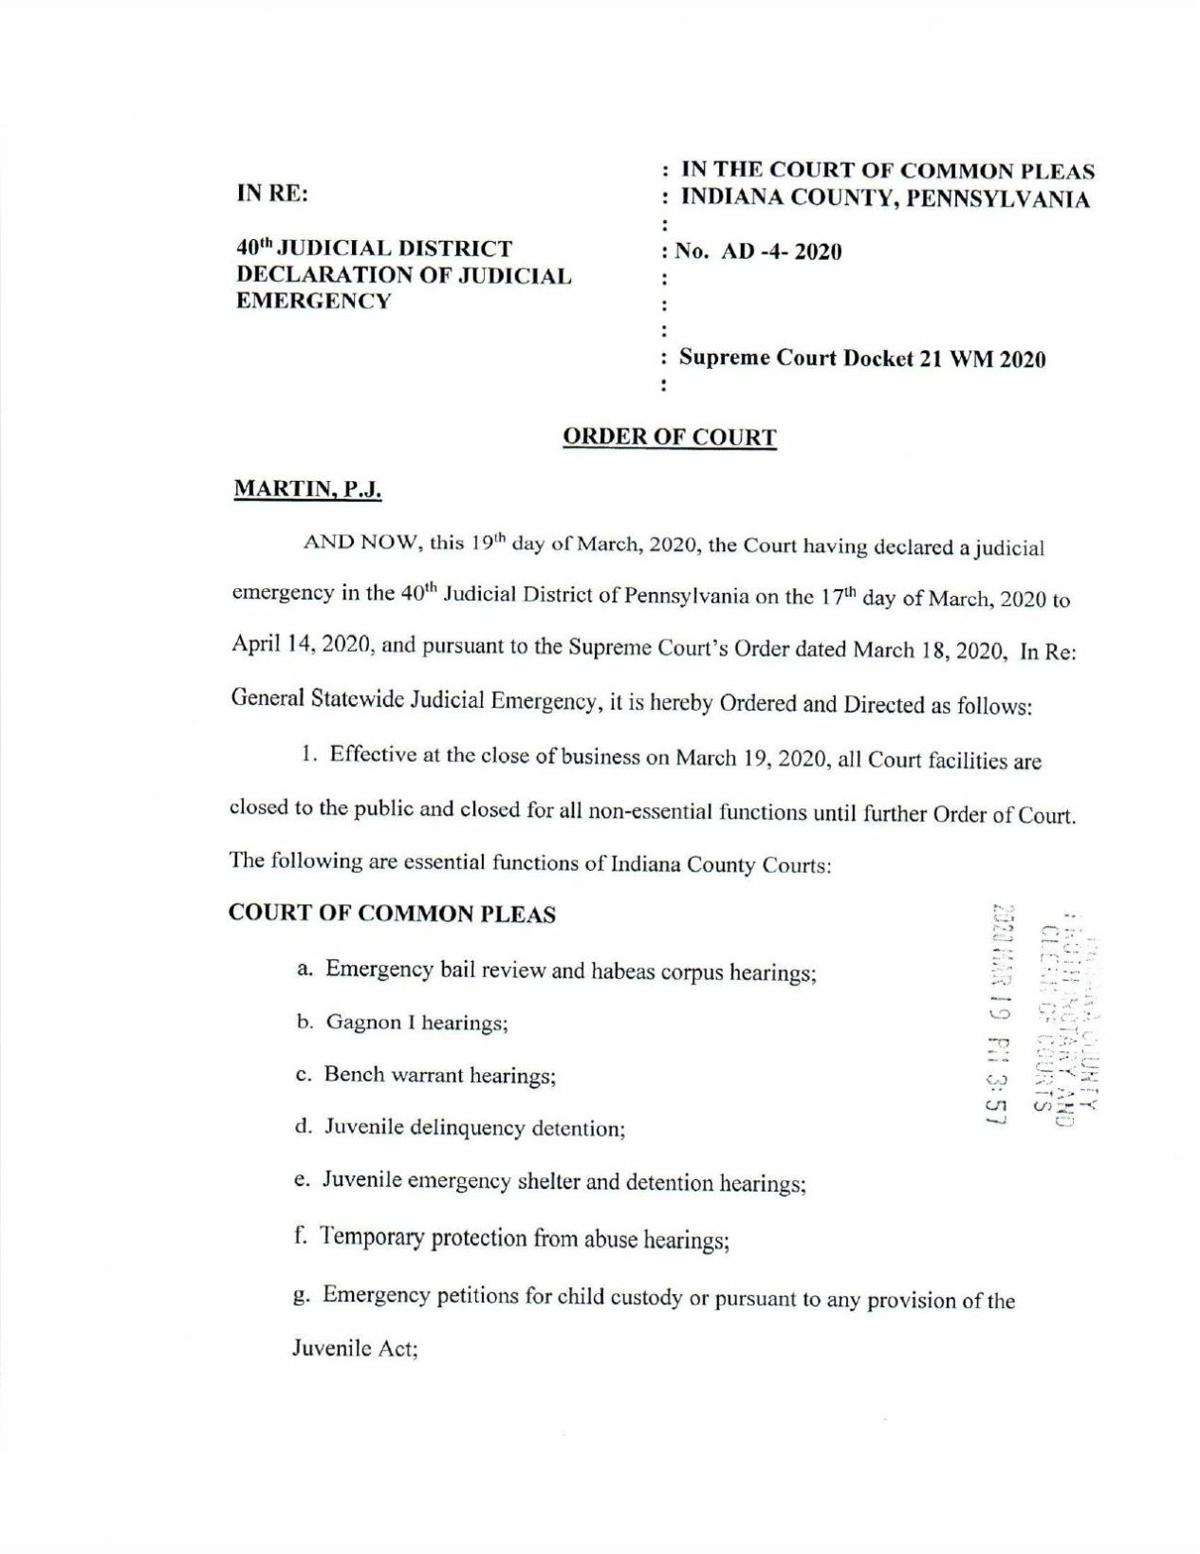 Indiana County court closing order (PDF)